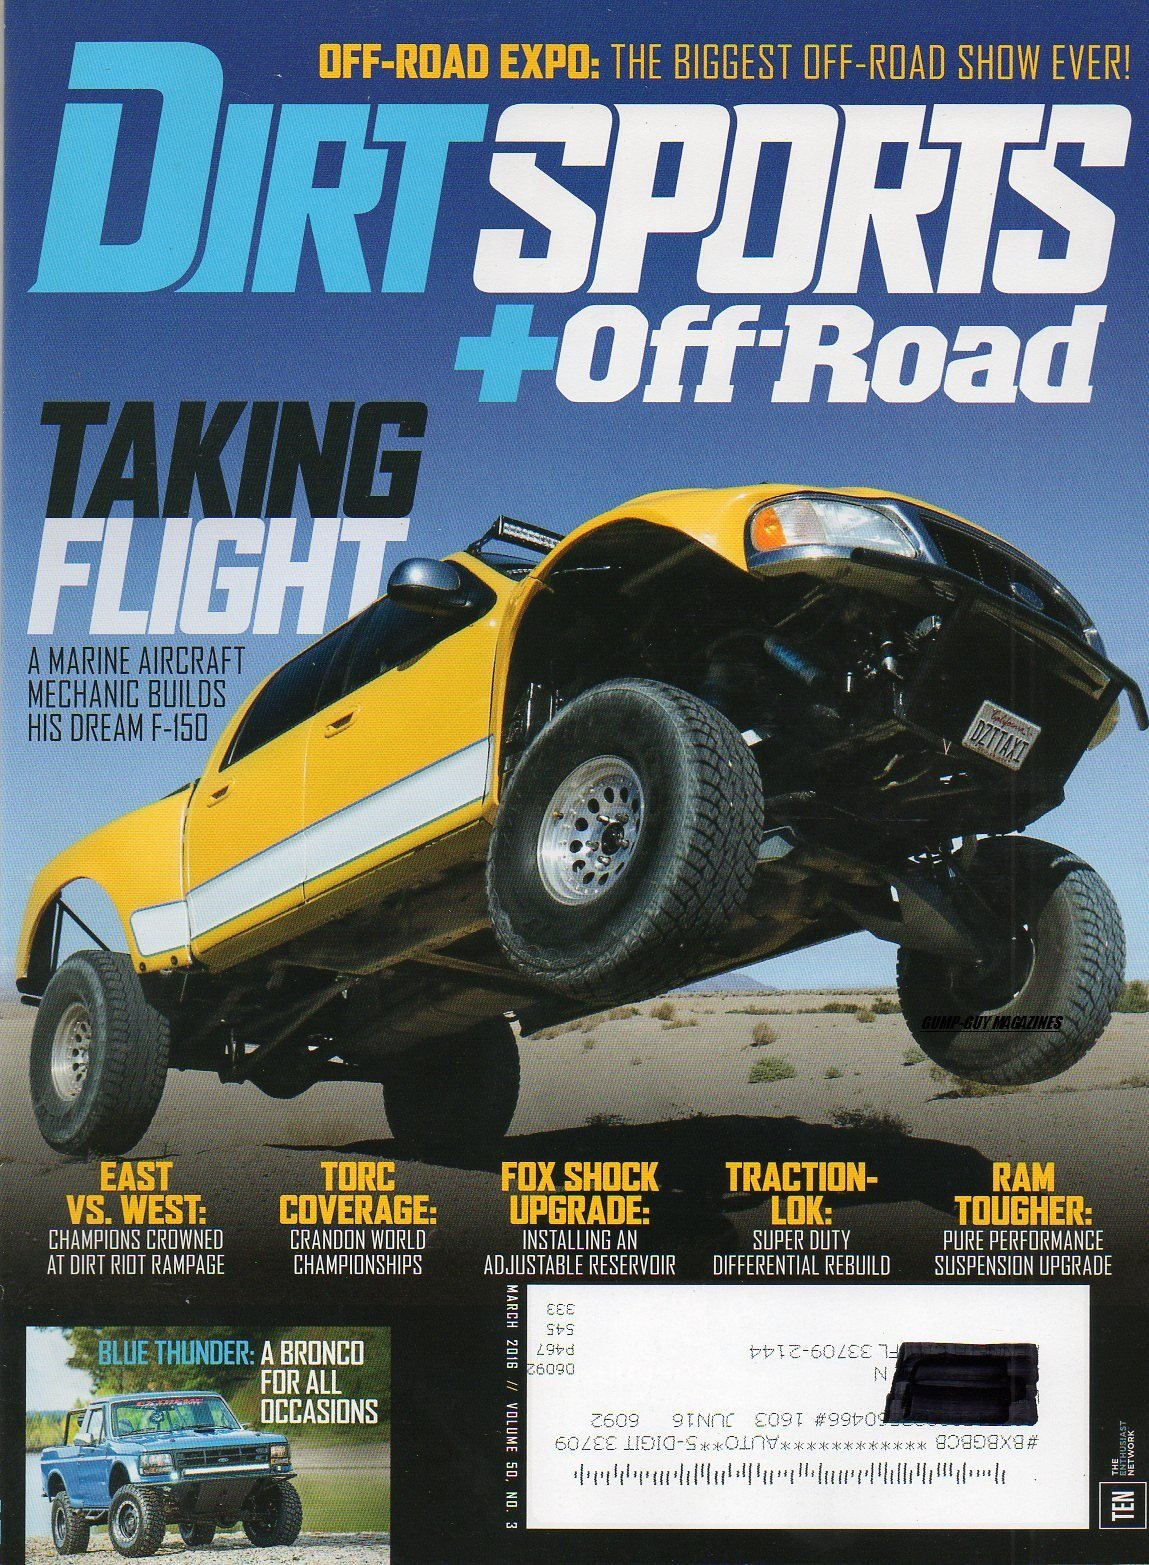 Download Dirt Sports + Off-Road March 2016 Magazine TAKING FLIGHT: A MARINE AIRCRAFT MECHANIC BUILDS HIS DREAM F-150 Off-Road Expo: The Biggest Off-Road Show Ever pdf epub